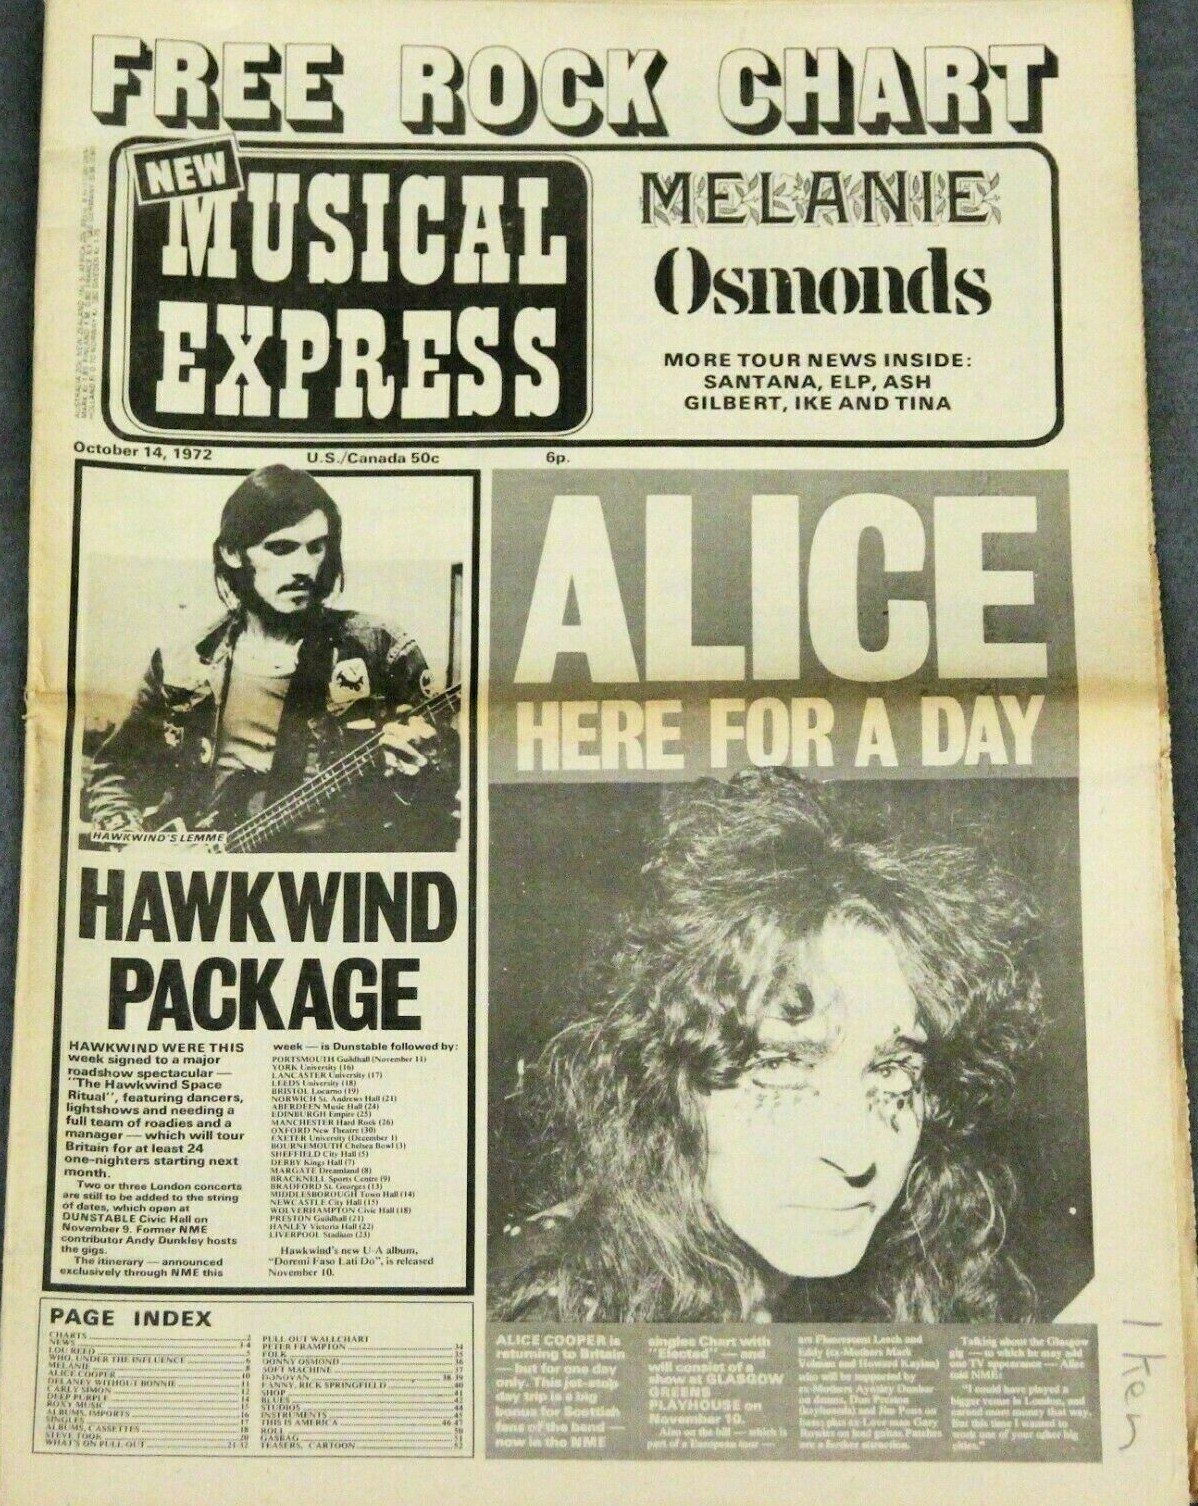 NME - 14.10.72